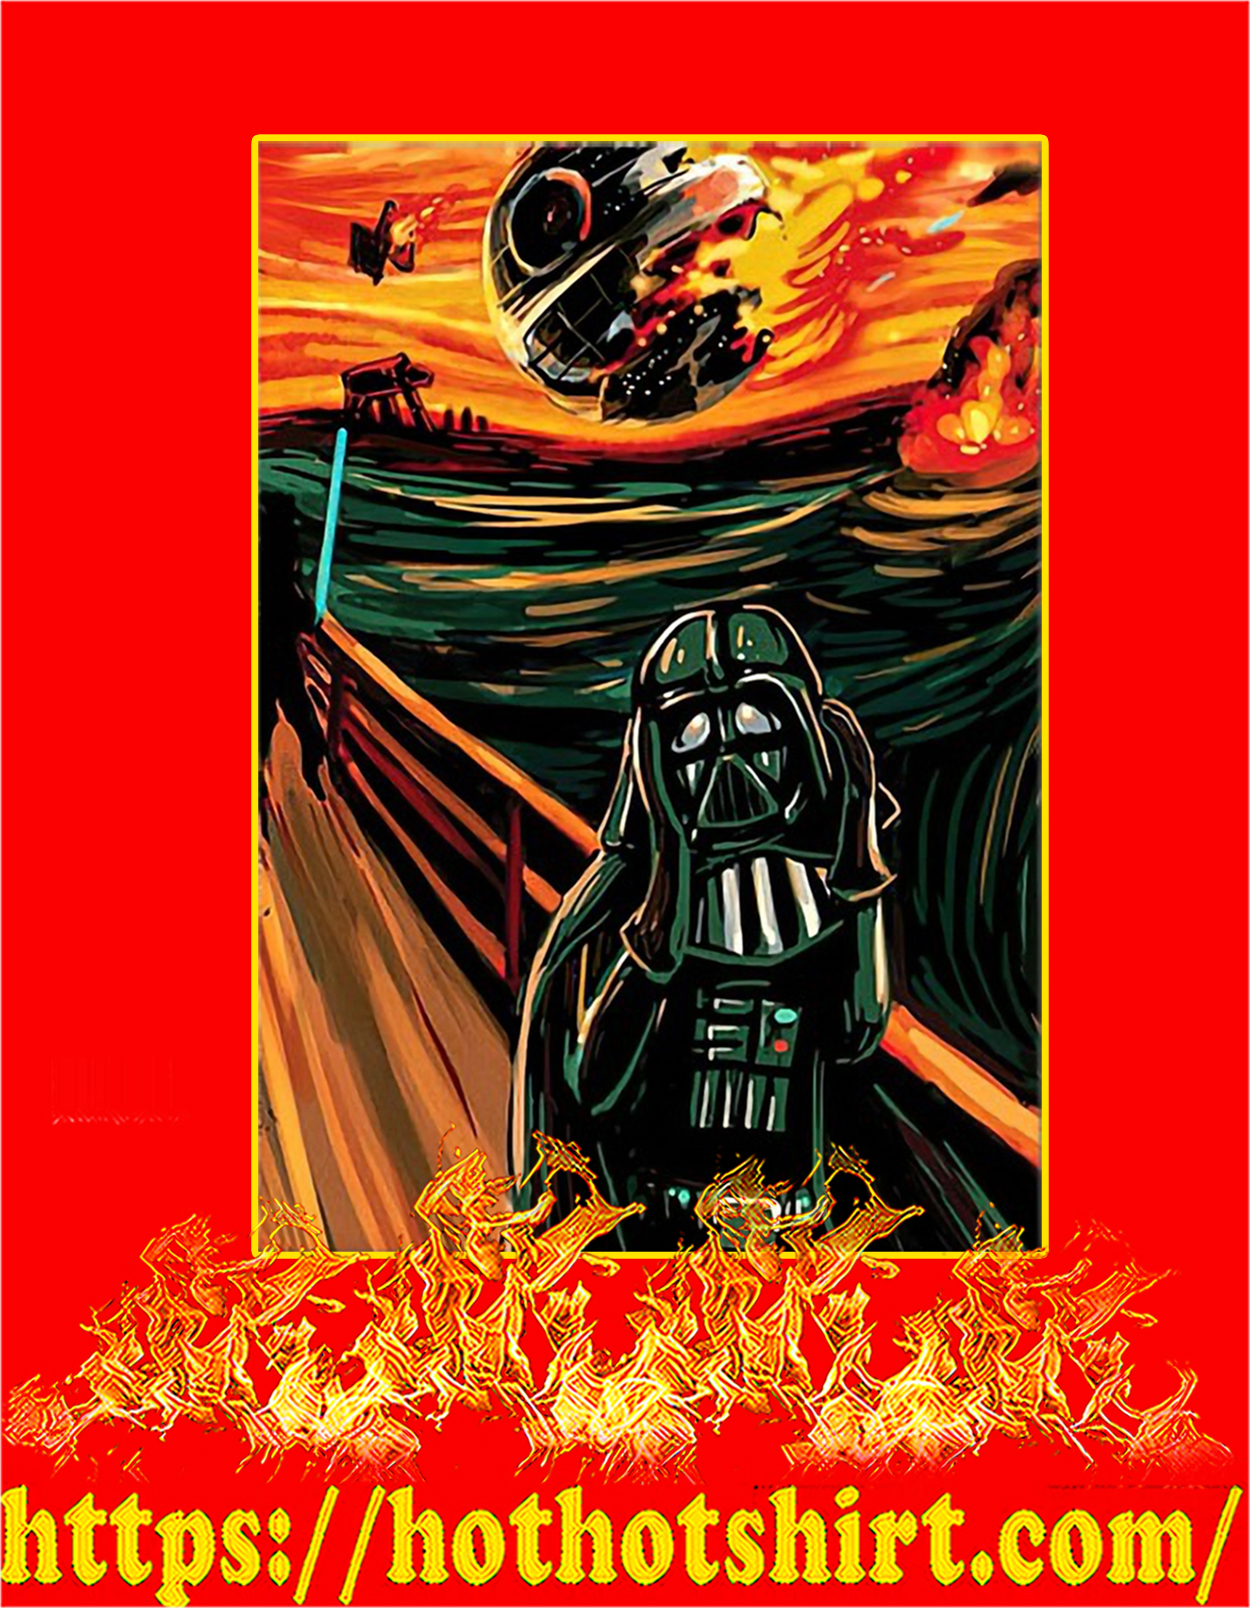 Star Wars The Vader Scream Poster - A3